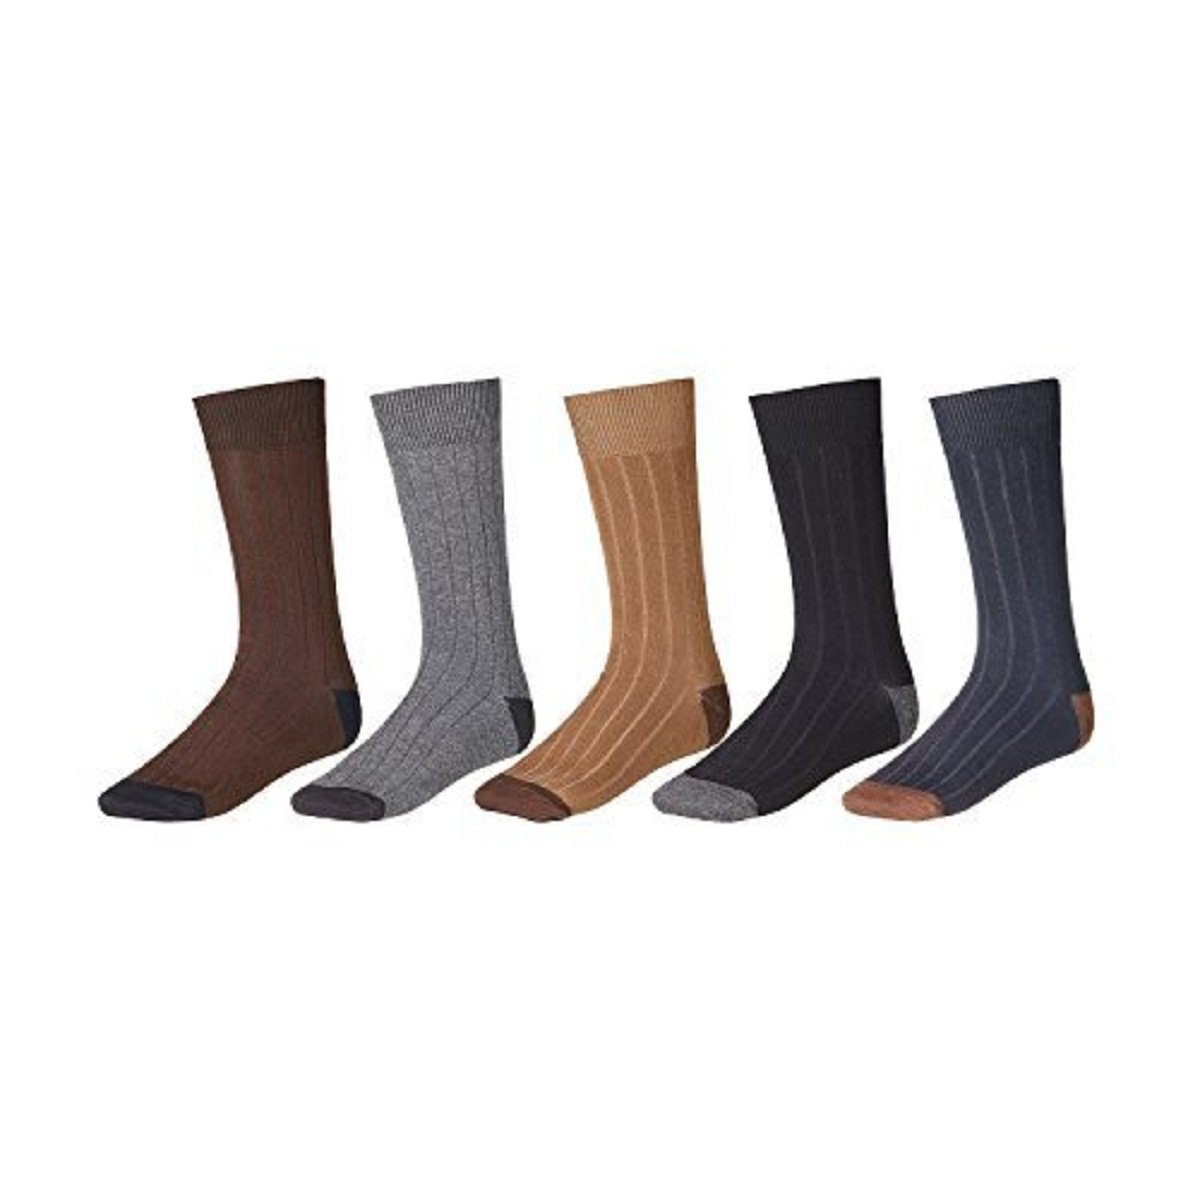 12 Pair Easy Match Men's Rayon Blend Dress Socks by Slick Socks (Black, Navy, Tan, Gray, Brown)